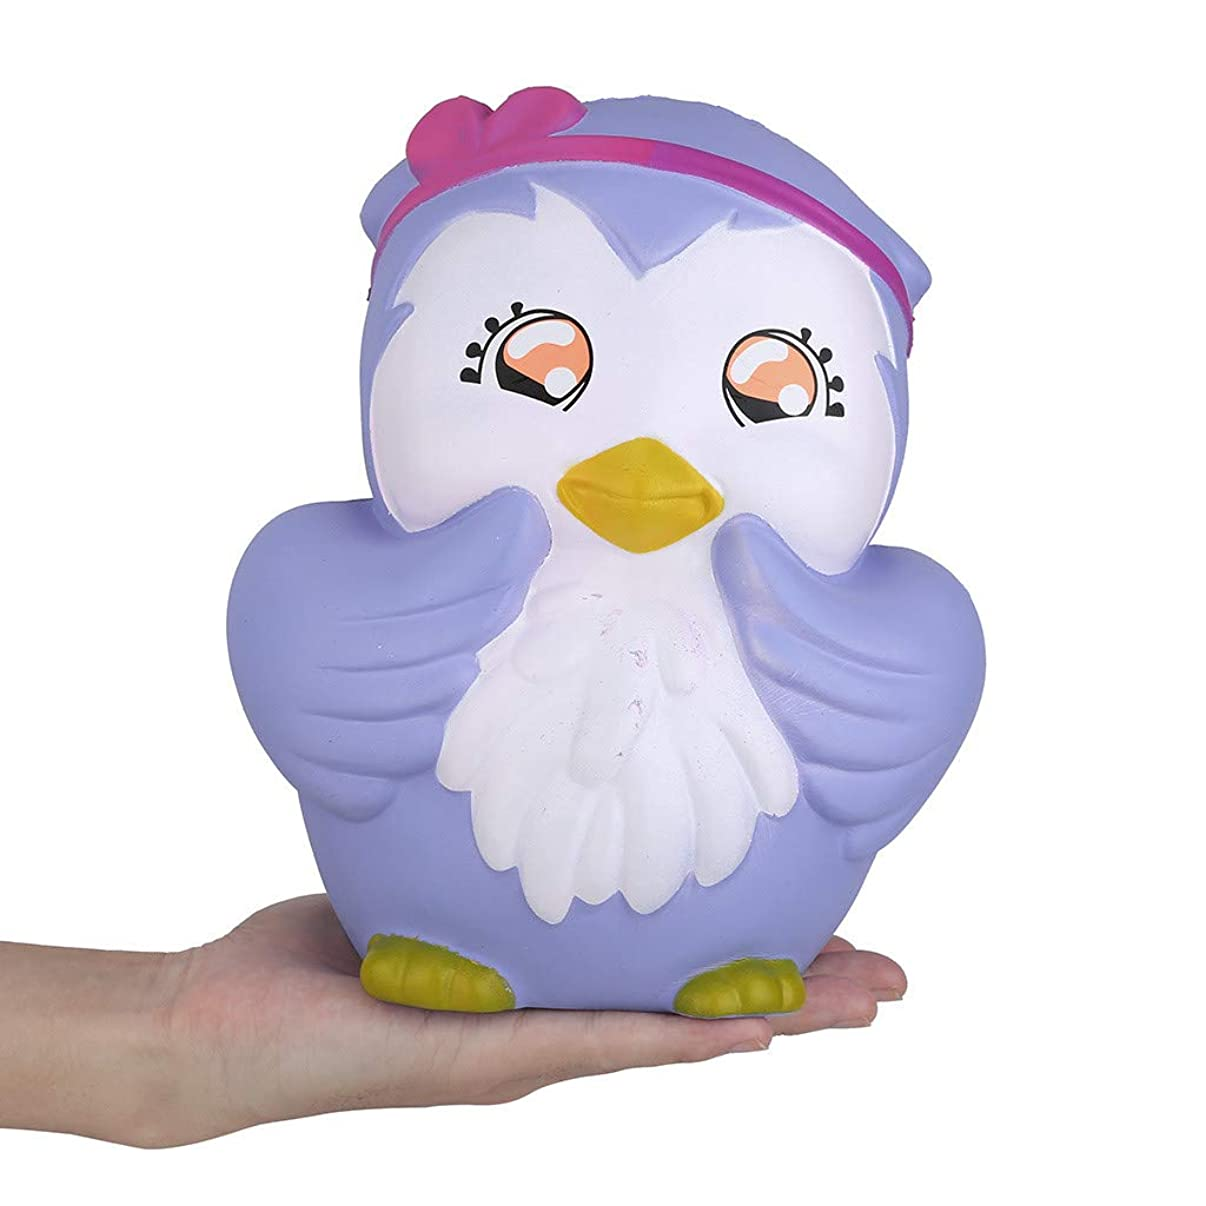 UNBRUVO Kawaii Cartoon Owl Slow Rising Cream Scented Stress Relief Toy